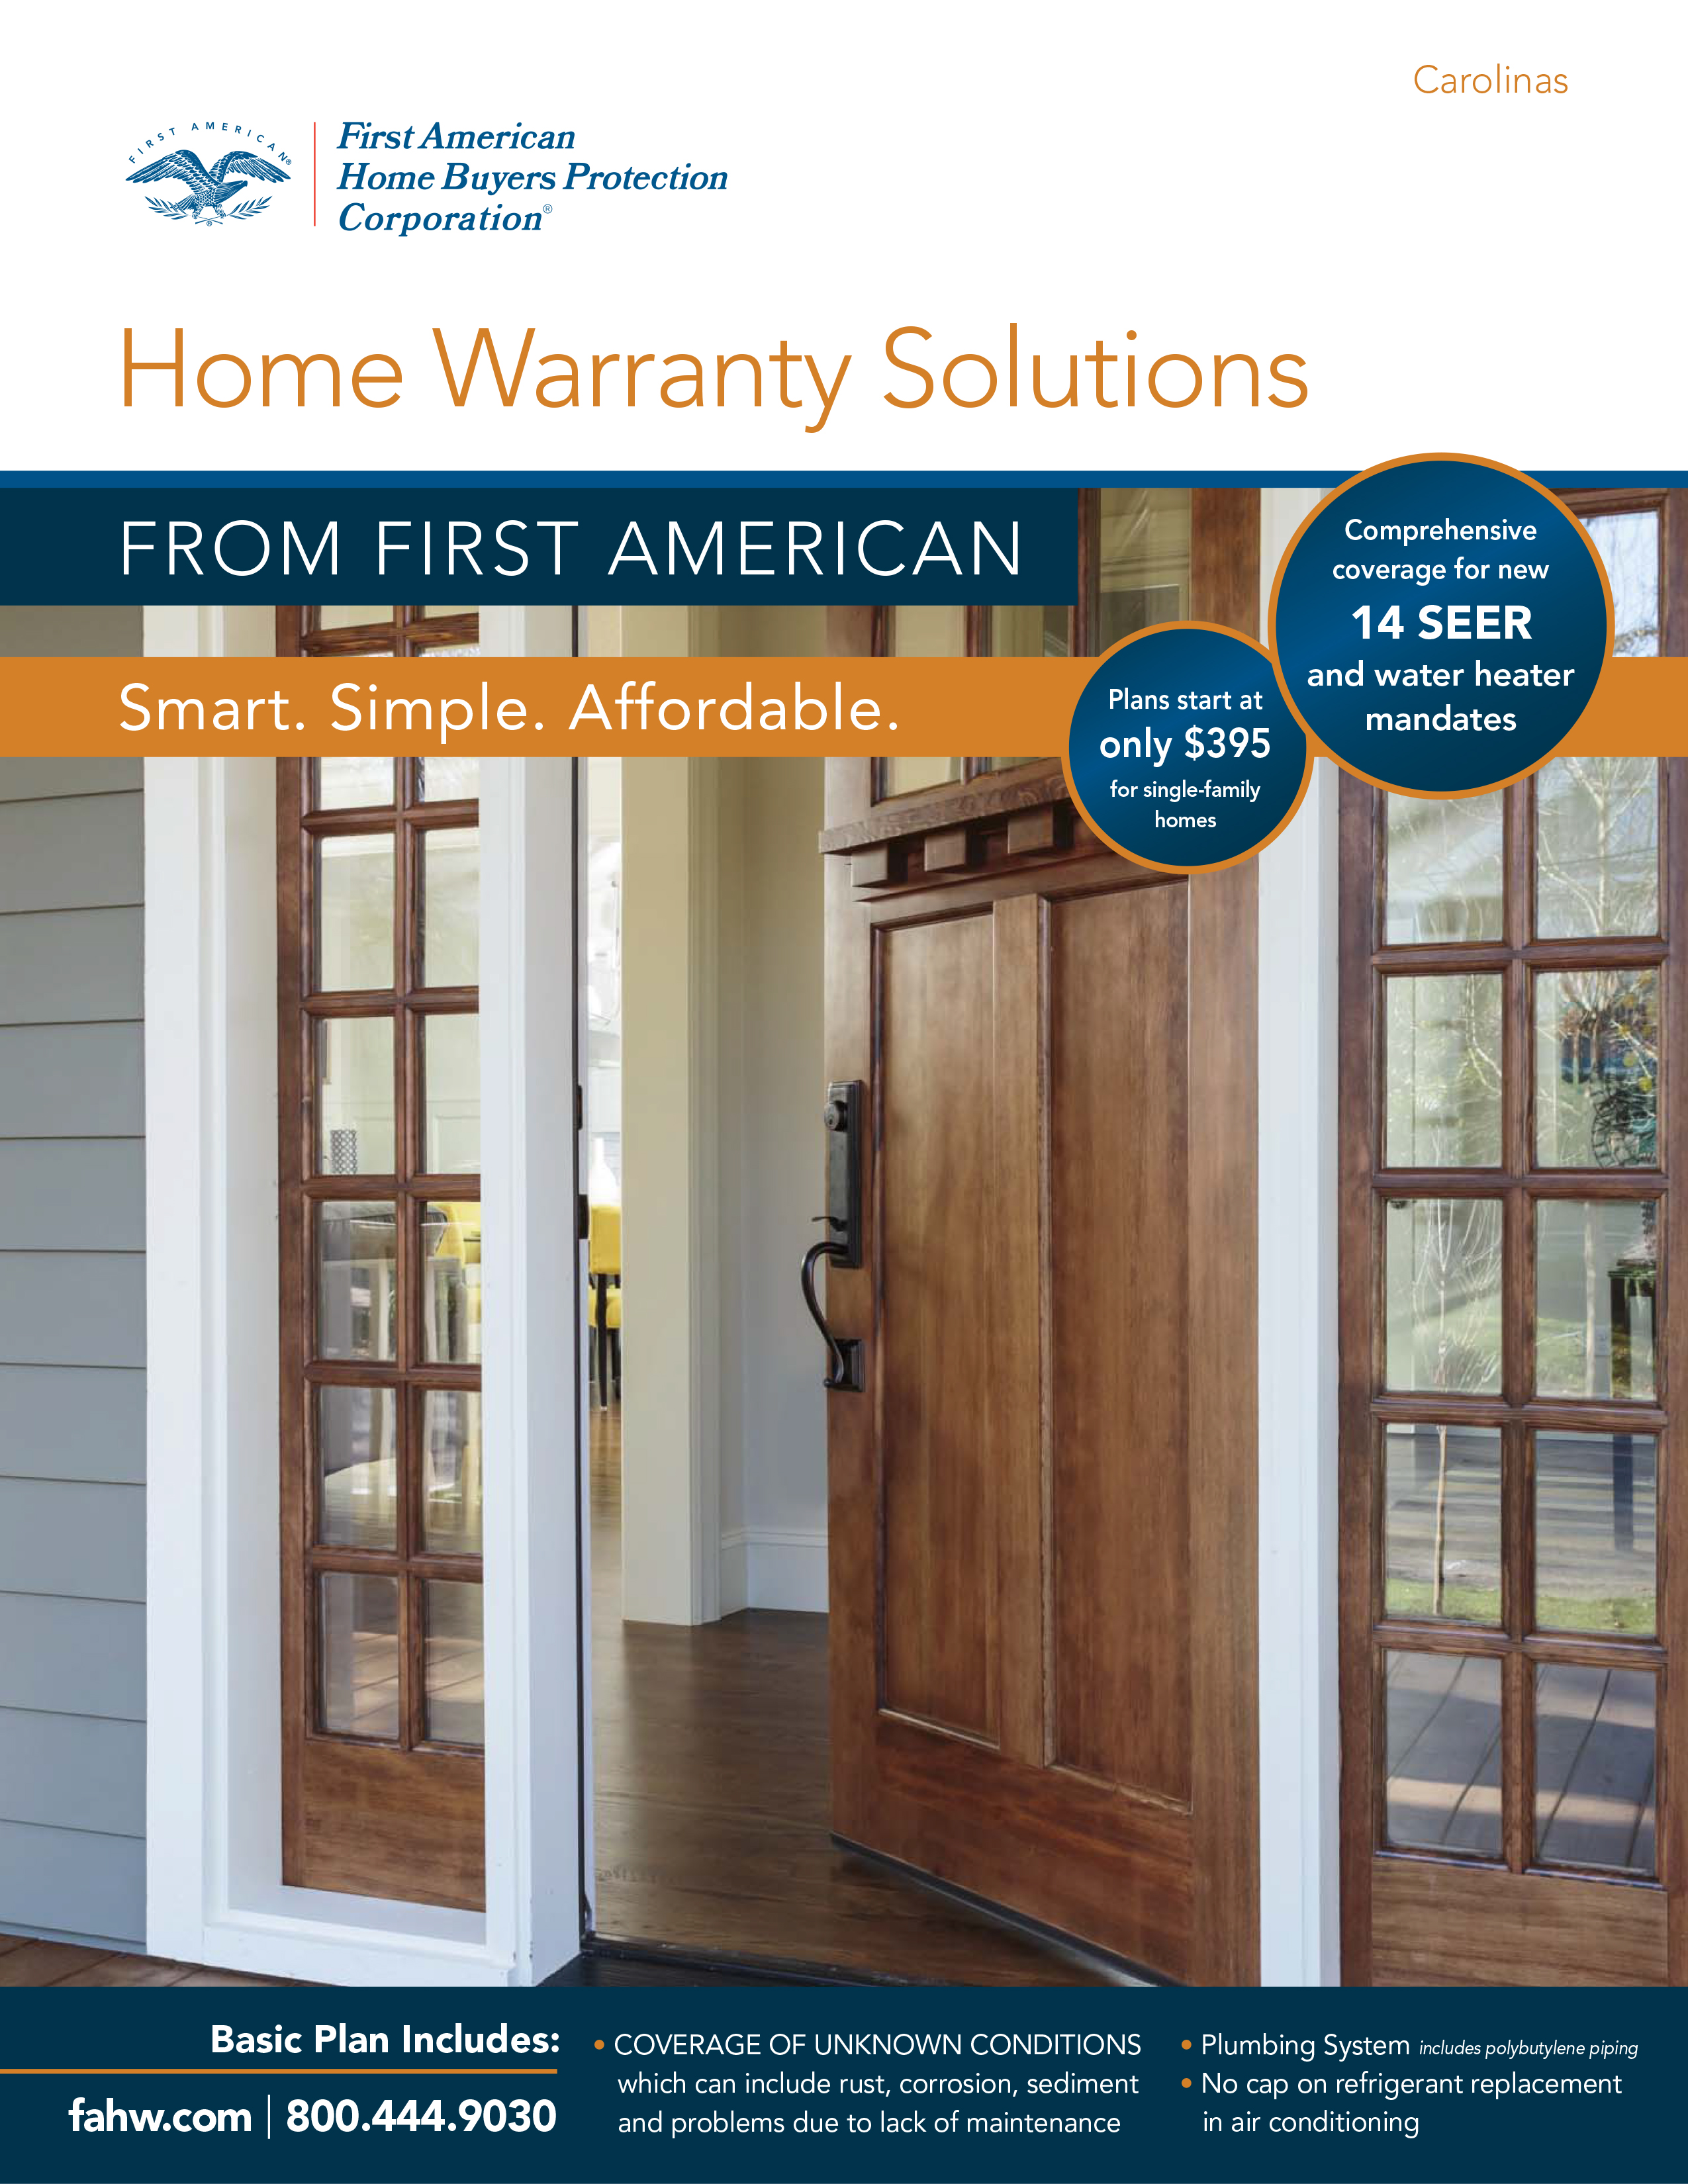 Top Rated Home Warranty Plans Top 10 Reviews Of First American Home Warranty